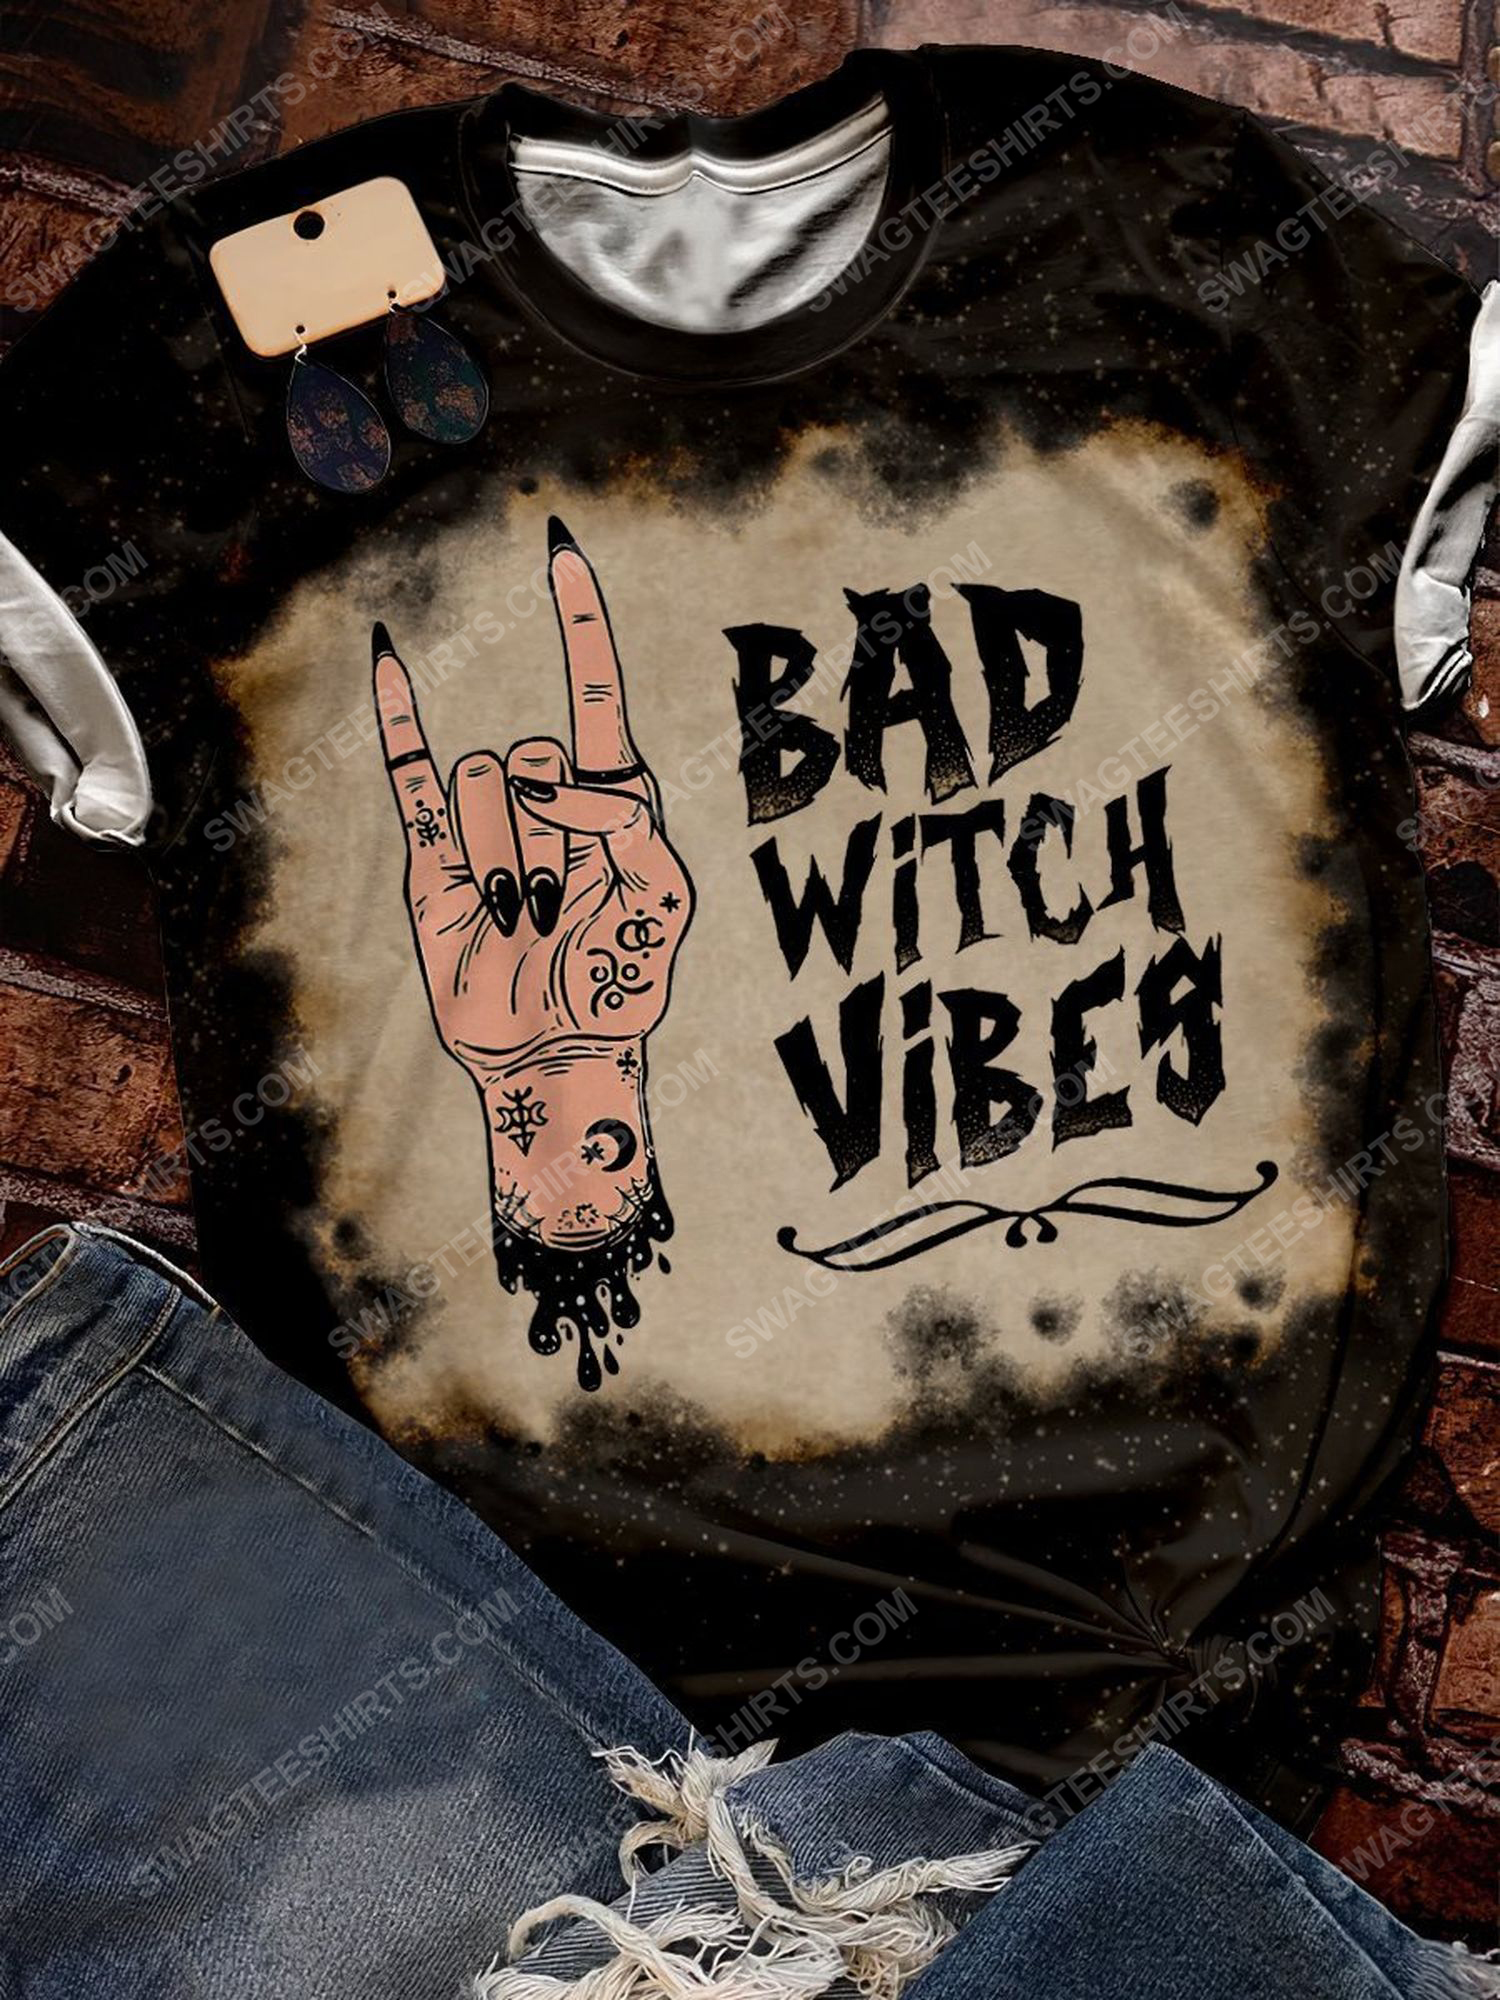 Halloween night bad witch vibes bleached shirt 1 - Copy